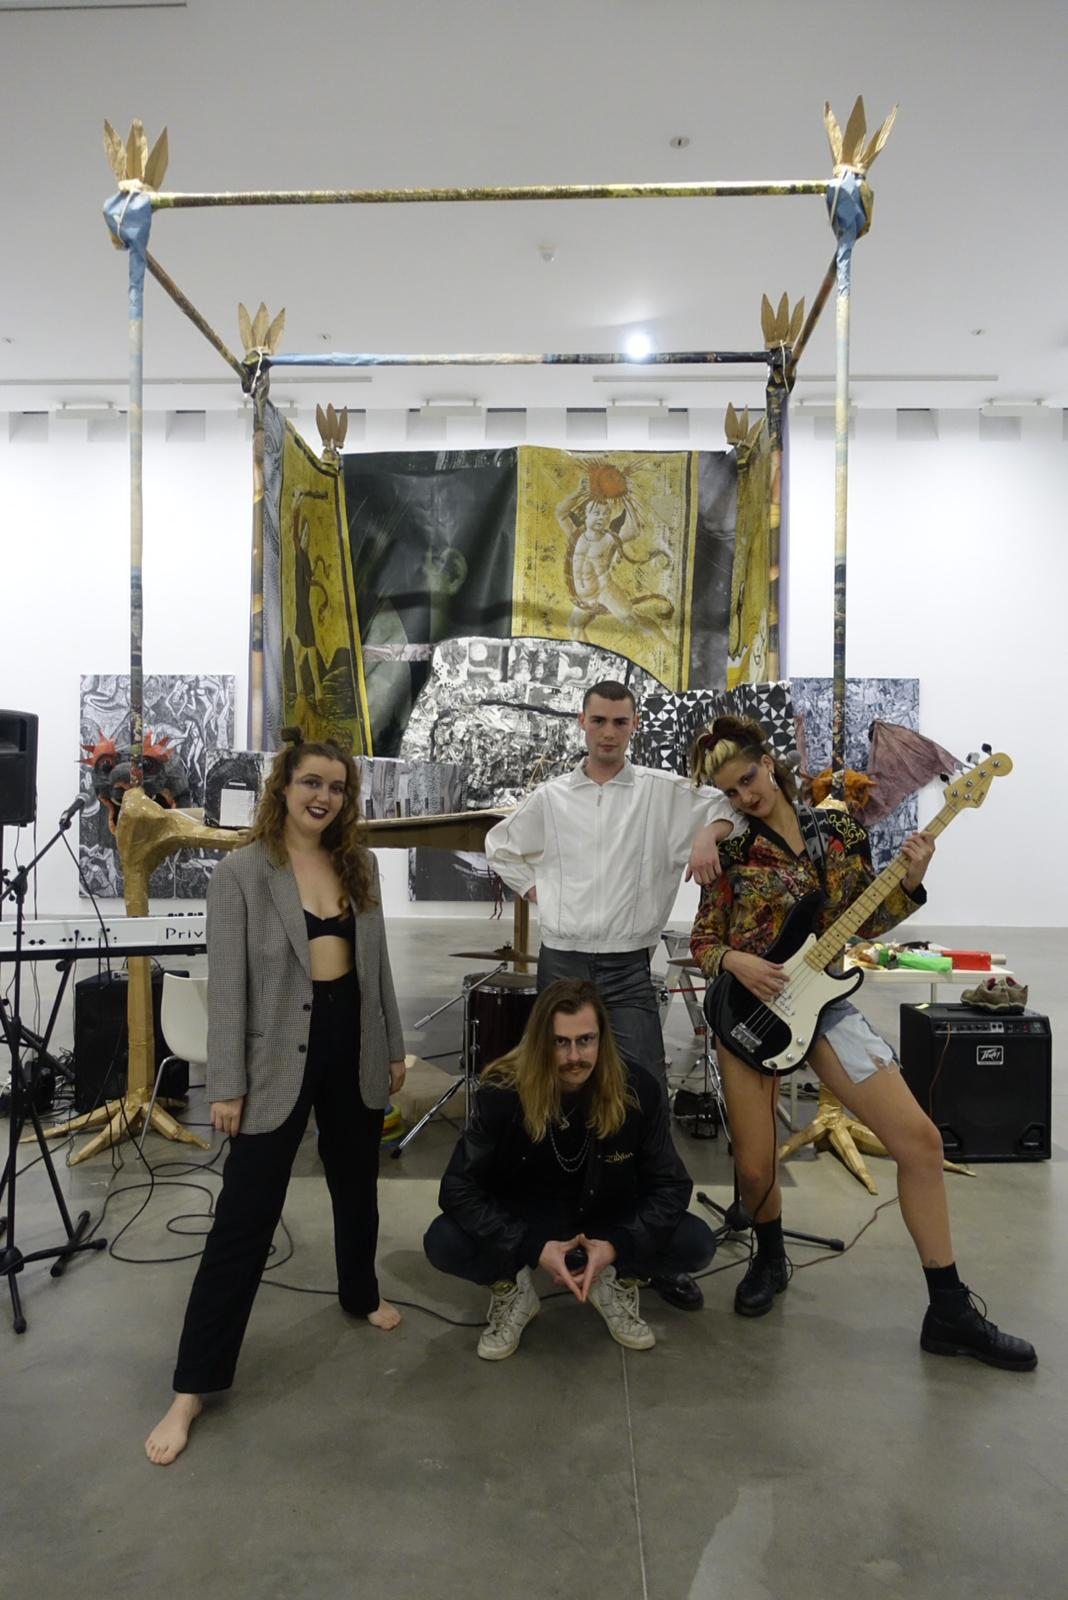 Chlamydia the Band performing at Monster Chetwynd's solo show 'The Owl with the Laser Eyes' at the Fondazione Sandretto Re Rebaudengo in Turin, 2018